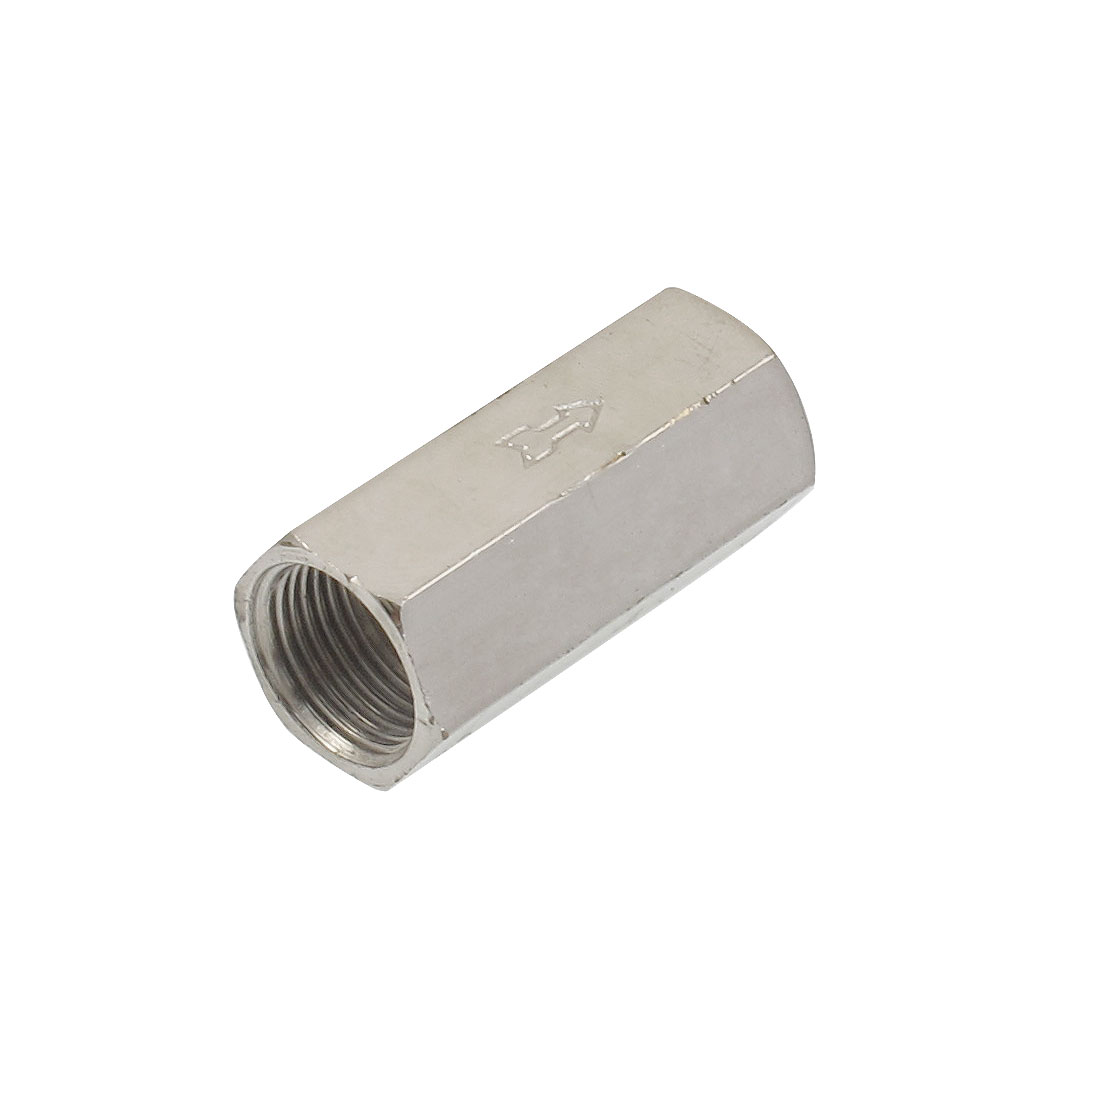 "3/8"" PT Famale Thread Silver Tone Metal One Way Check Valve"